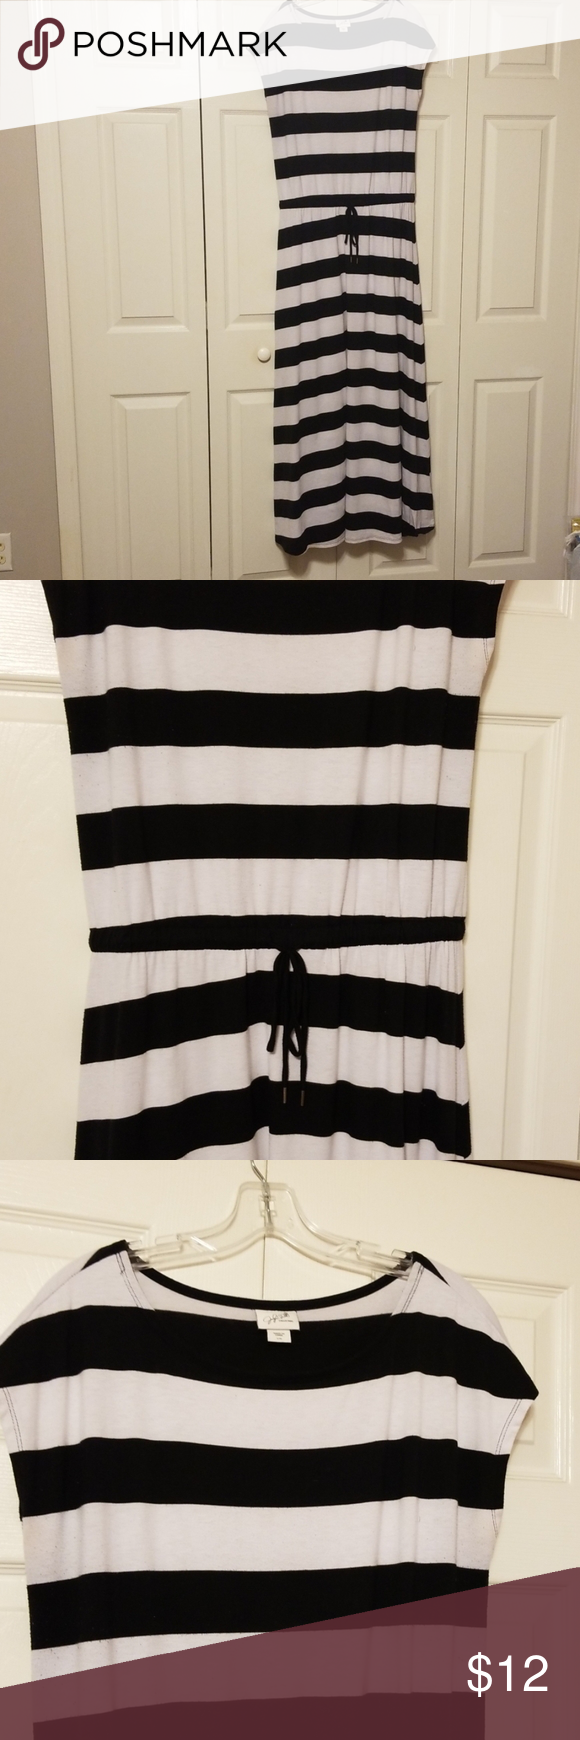 Striped Floor Length Cotton Dress Because It Is Floor Length It Has Some Marks On The End Of The Dress But So Comf Floor Length Cotton Dresses Length Cotton